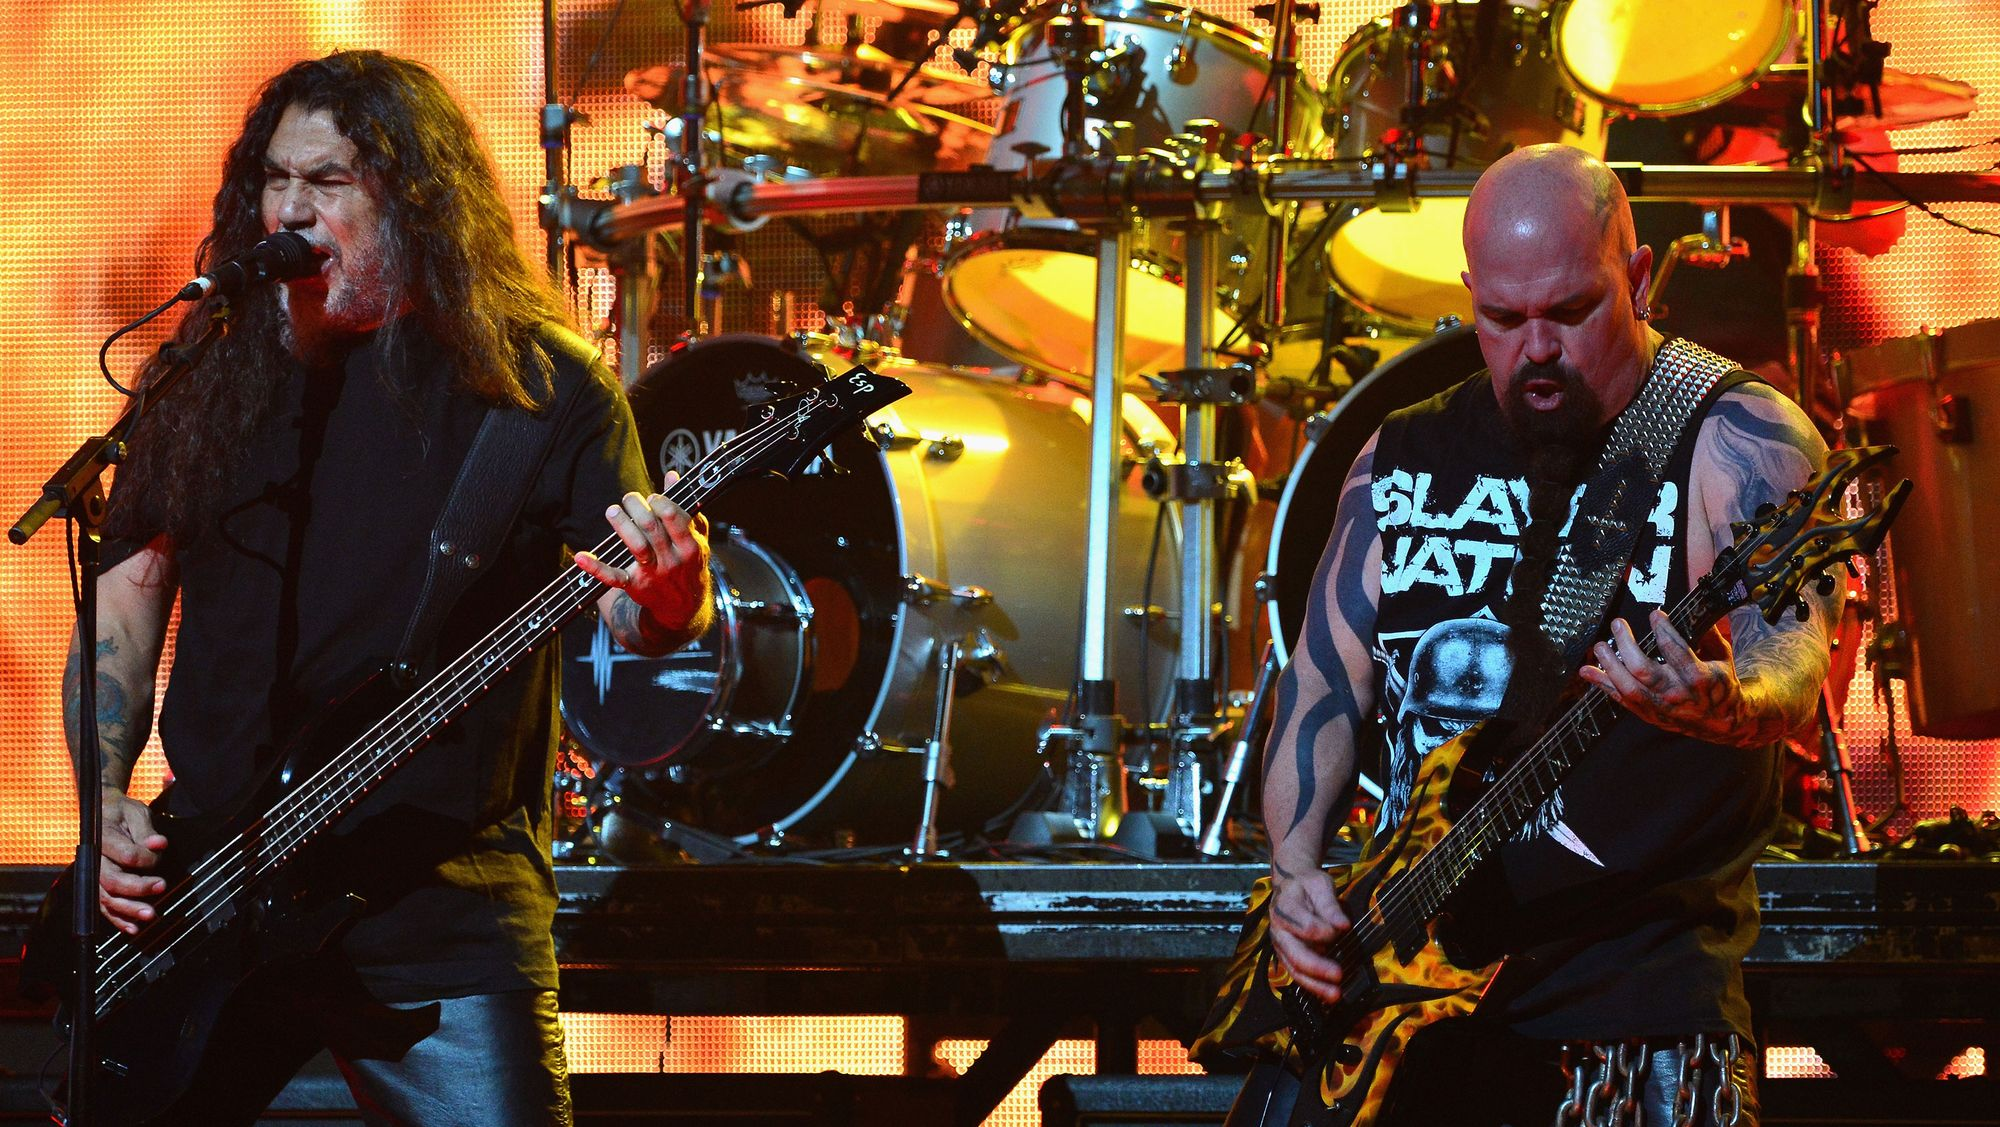 Le bassiste Tom Araya (à gauche) et le guitariste Kerry King lors d'un concert de Slayer en 2014 à Los Angeles.